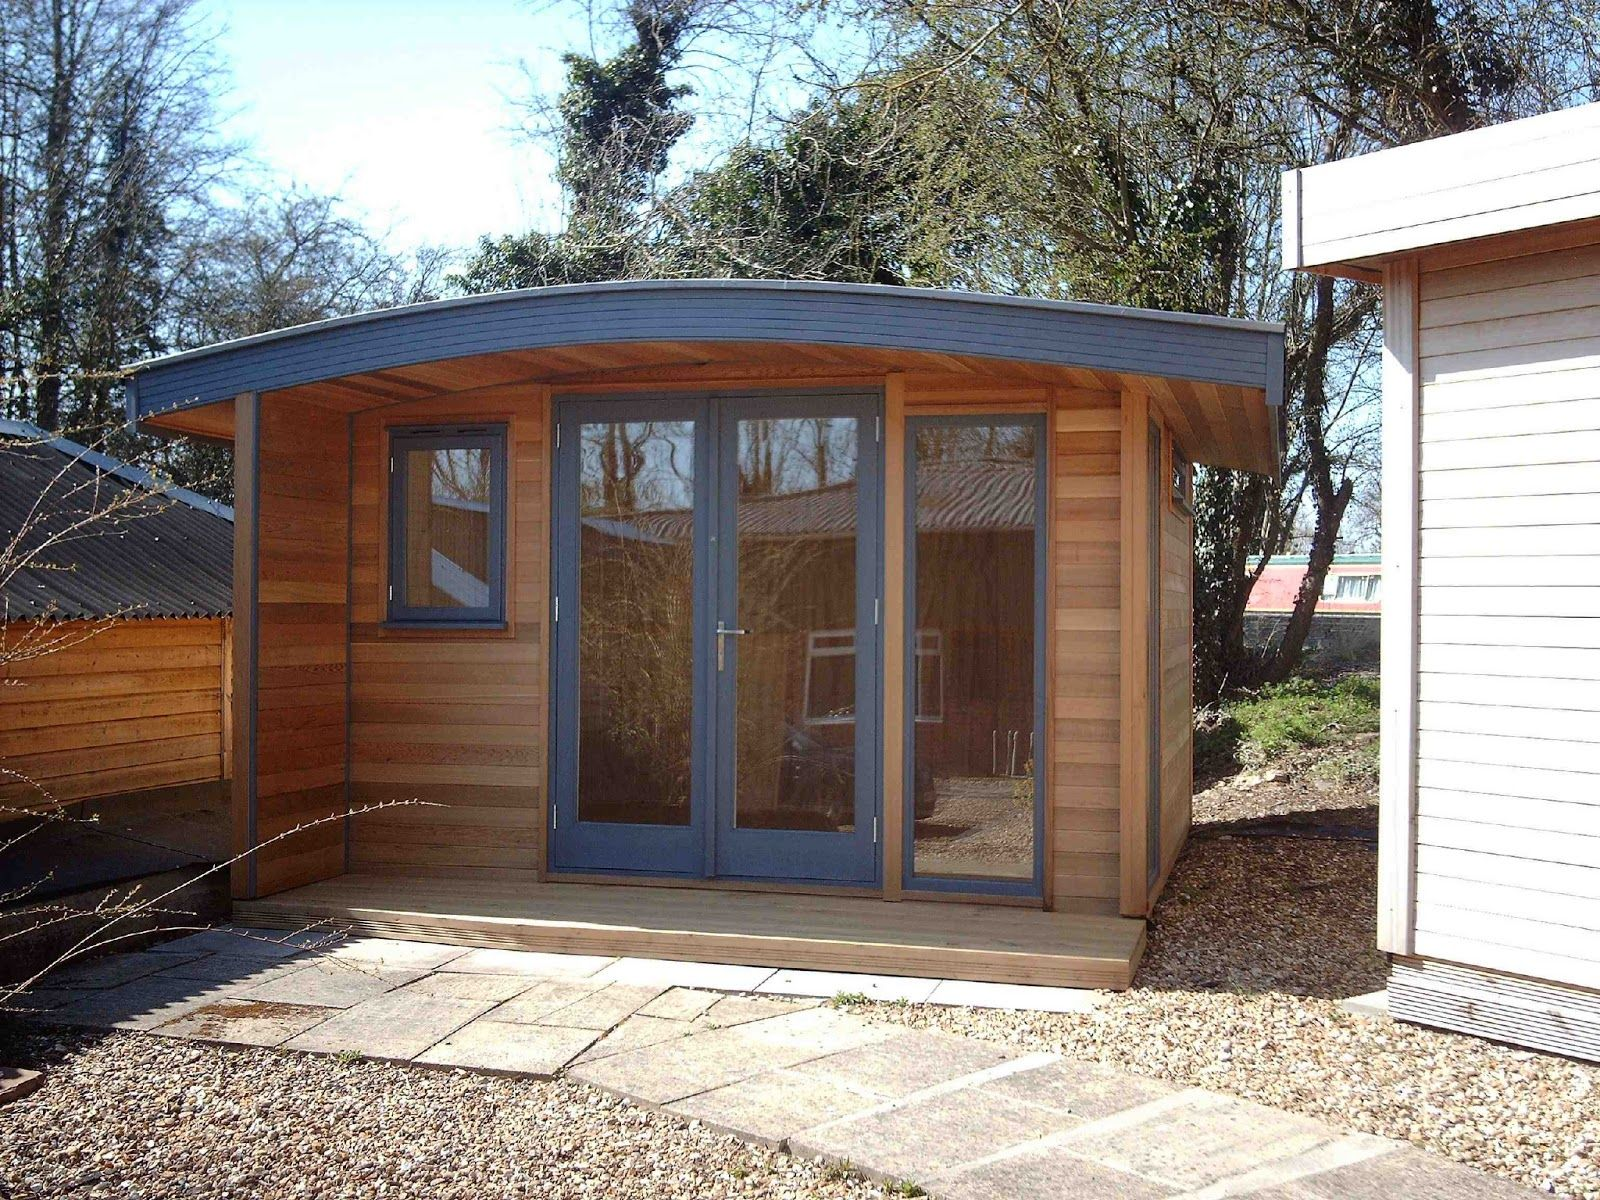 Shedworking curved roof garden office dream home tiny for Cedar garden office